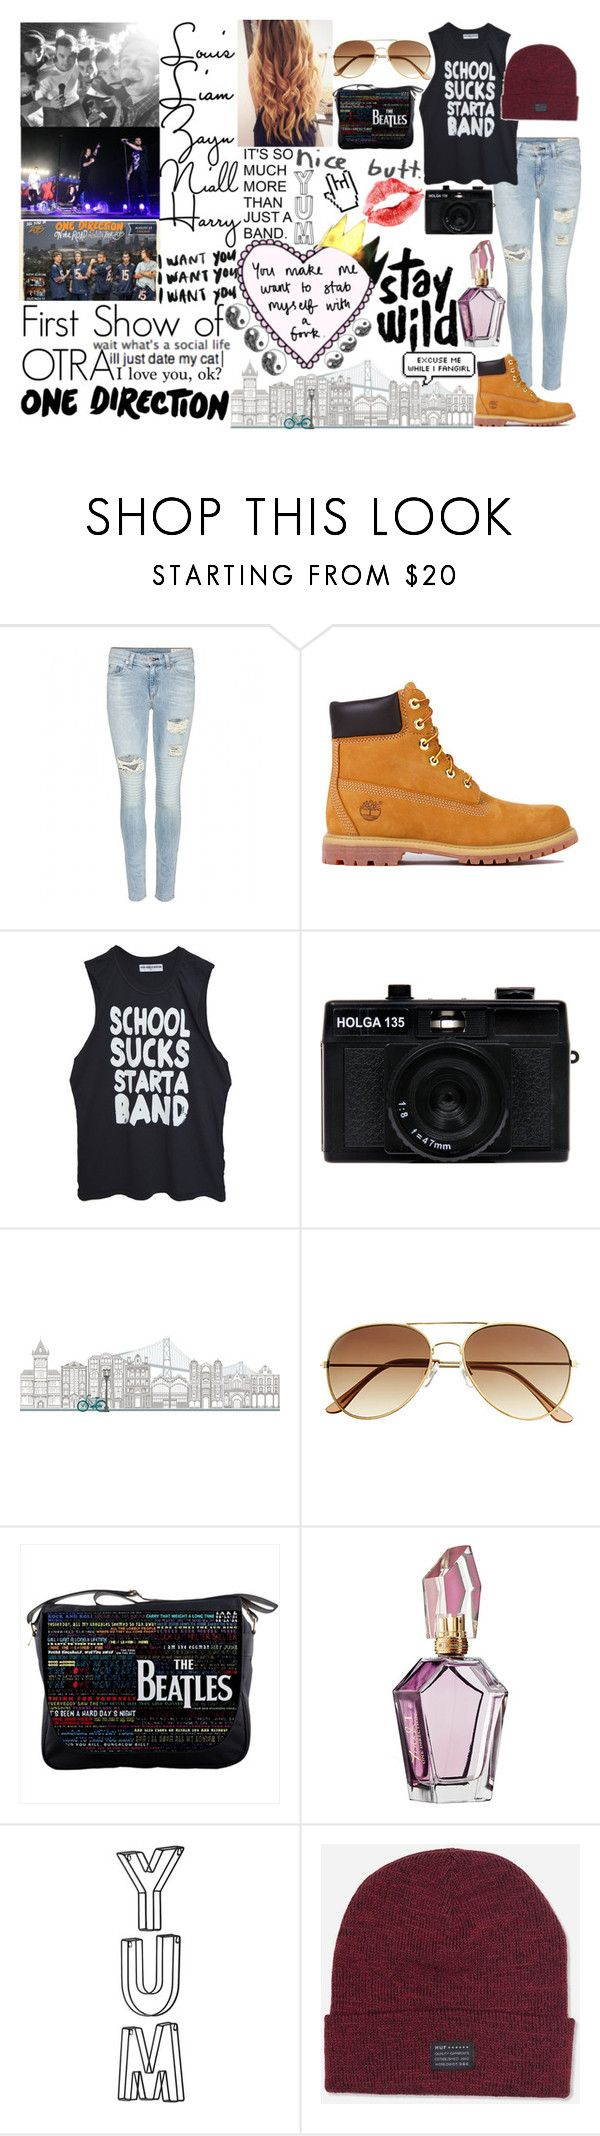 """""""First Show of OTRA Tour 2015"""" by kennedey-lynn-freeman ❤ liked on Polyvore featuring rag & bone, Timberland, High Heels Suicide, Holga, Wall Pops!, H&M, Again, Prada and HUF"""